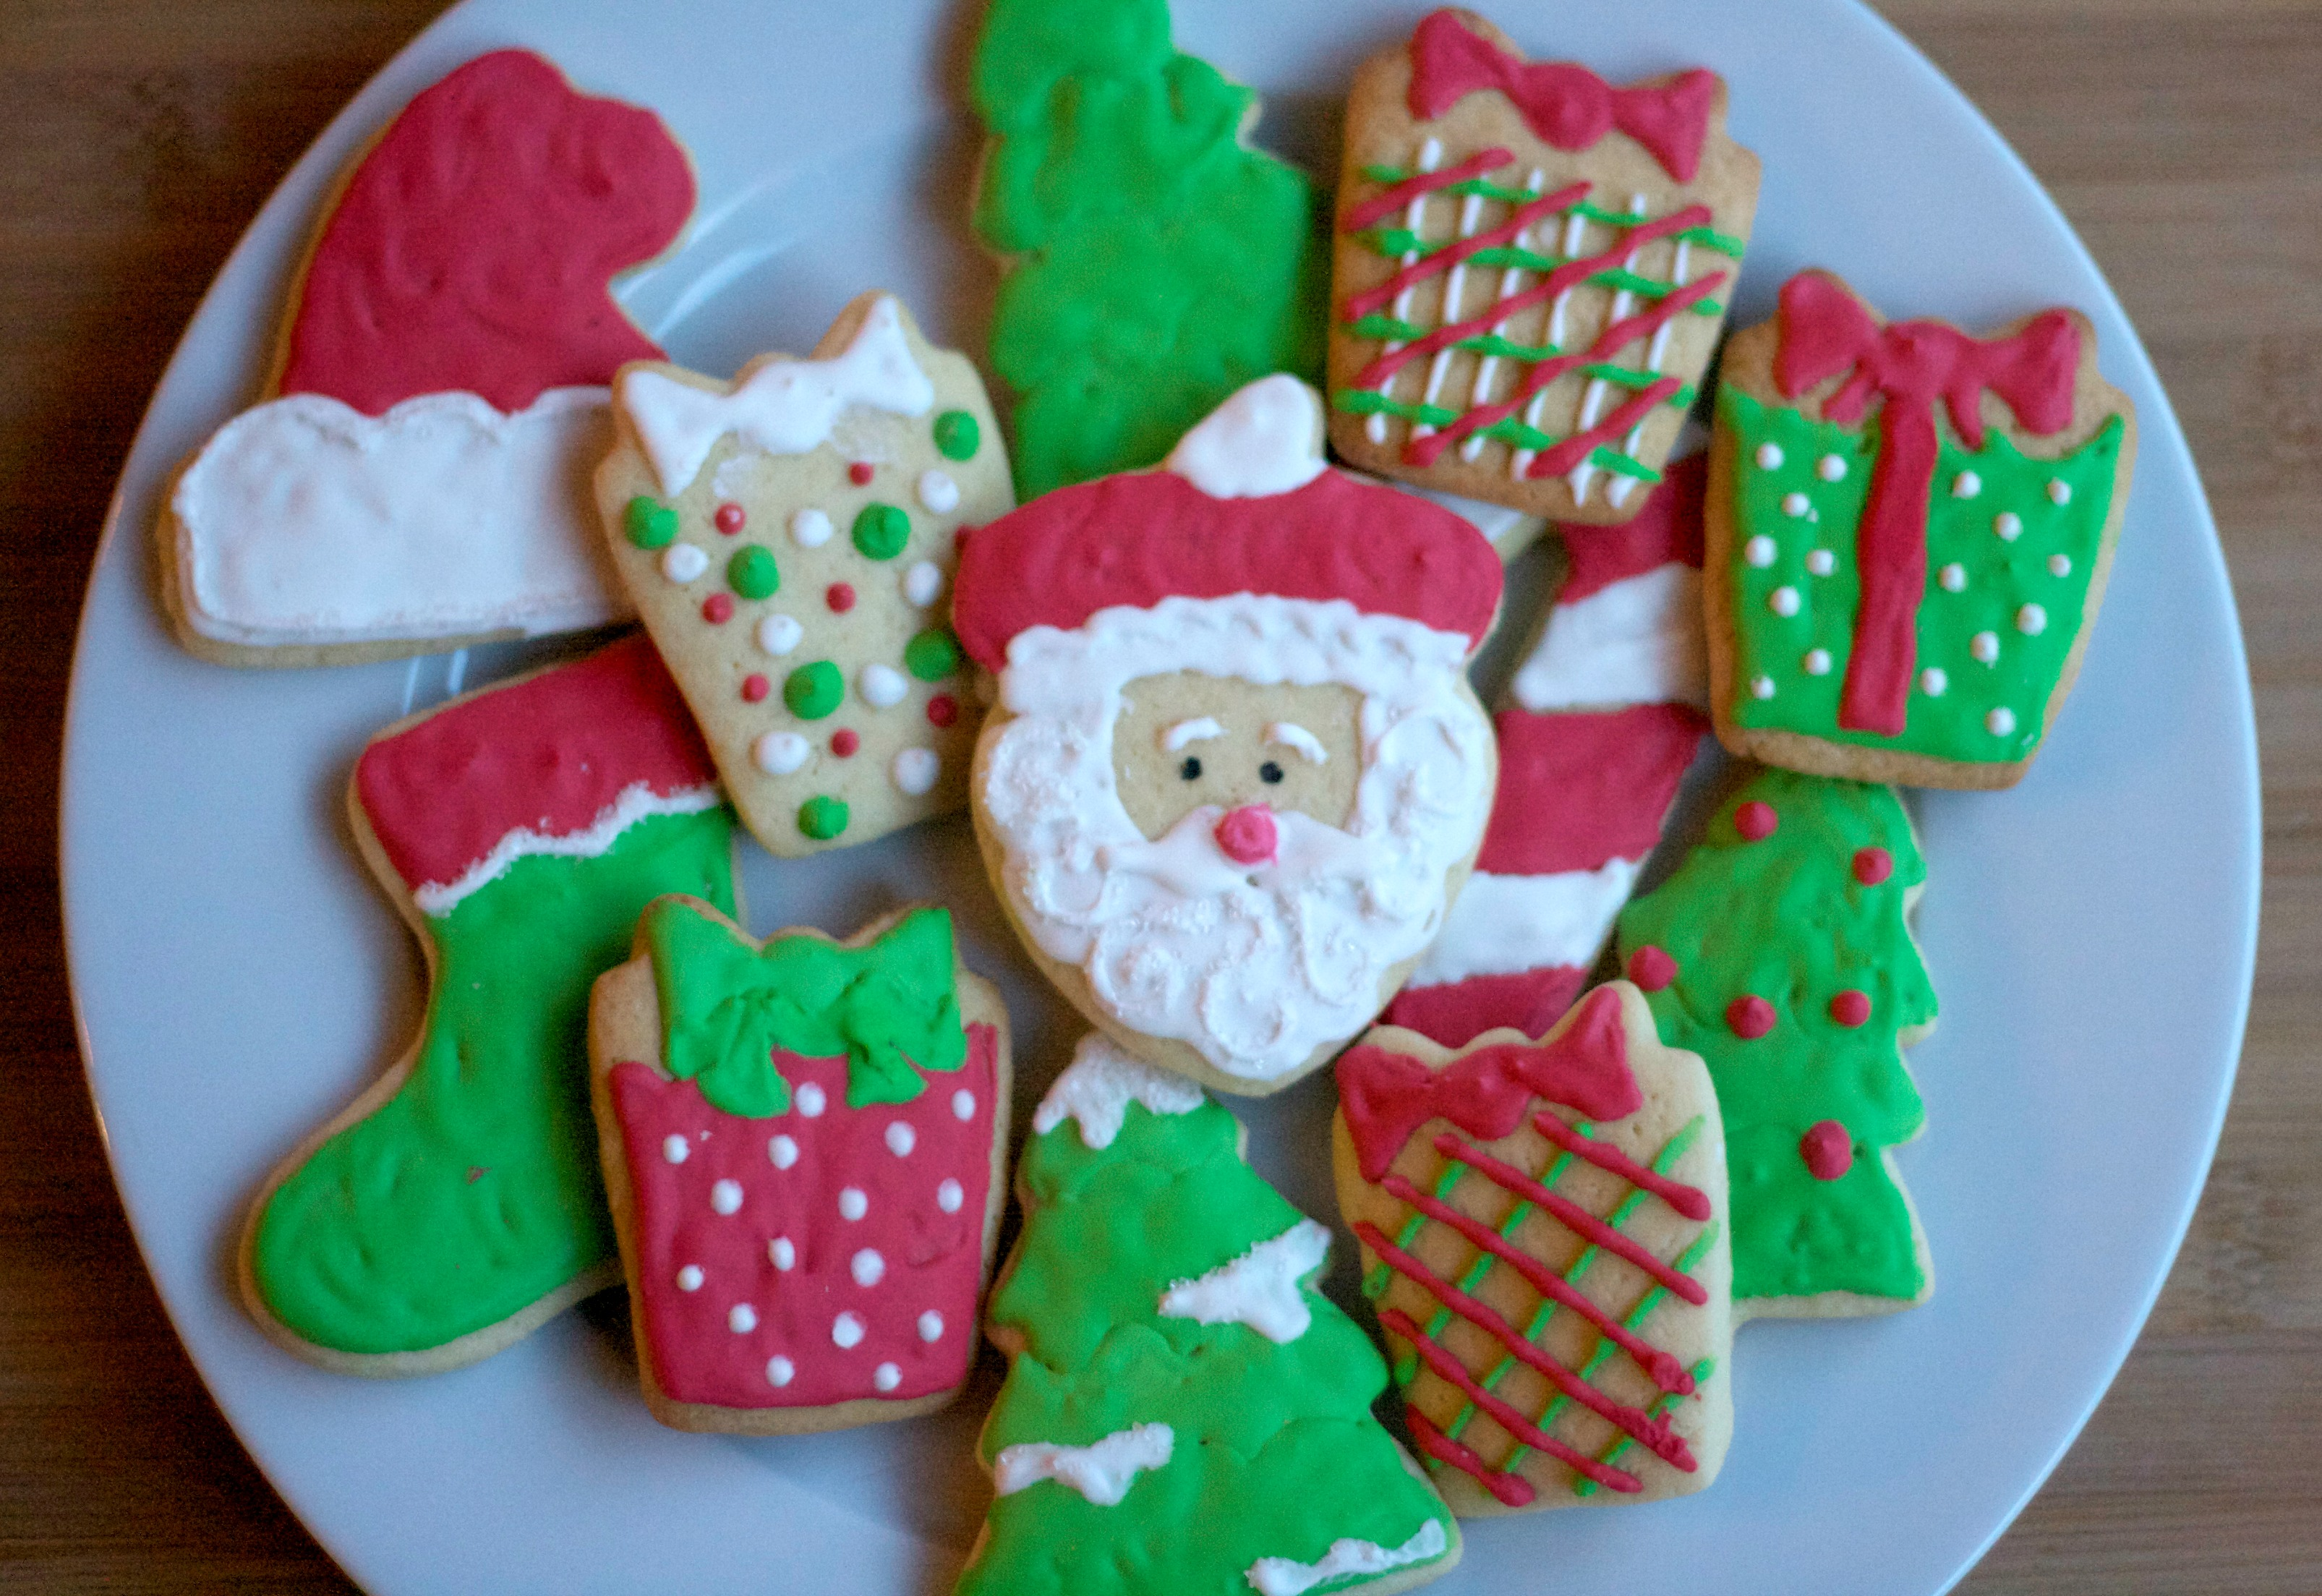 royal icing christmas sugar cookies santa cookies present cookies holiday iced sugar cookies - How To Decorate Christmas Cookies With Royal Icing